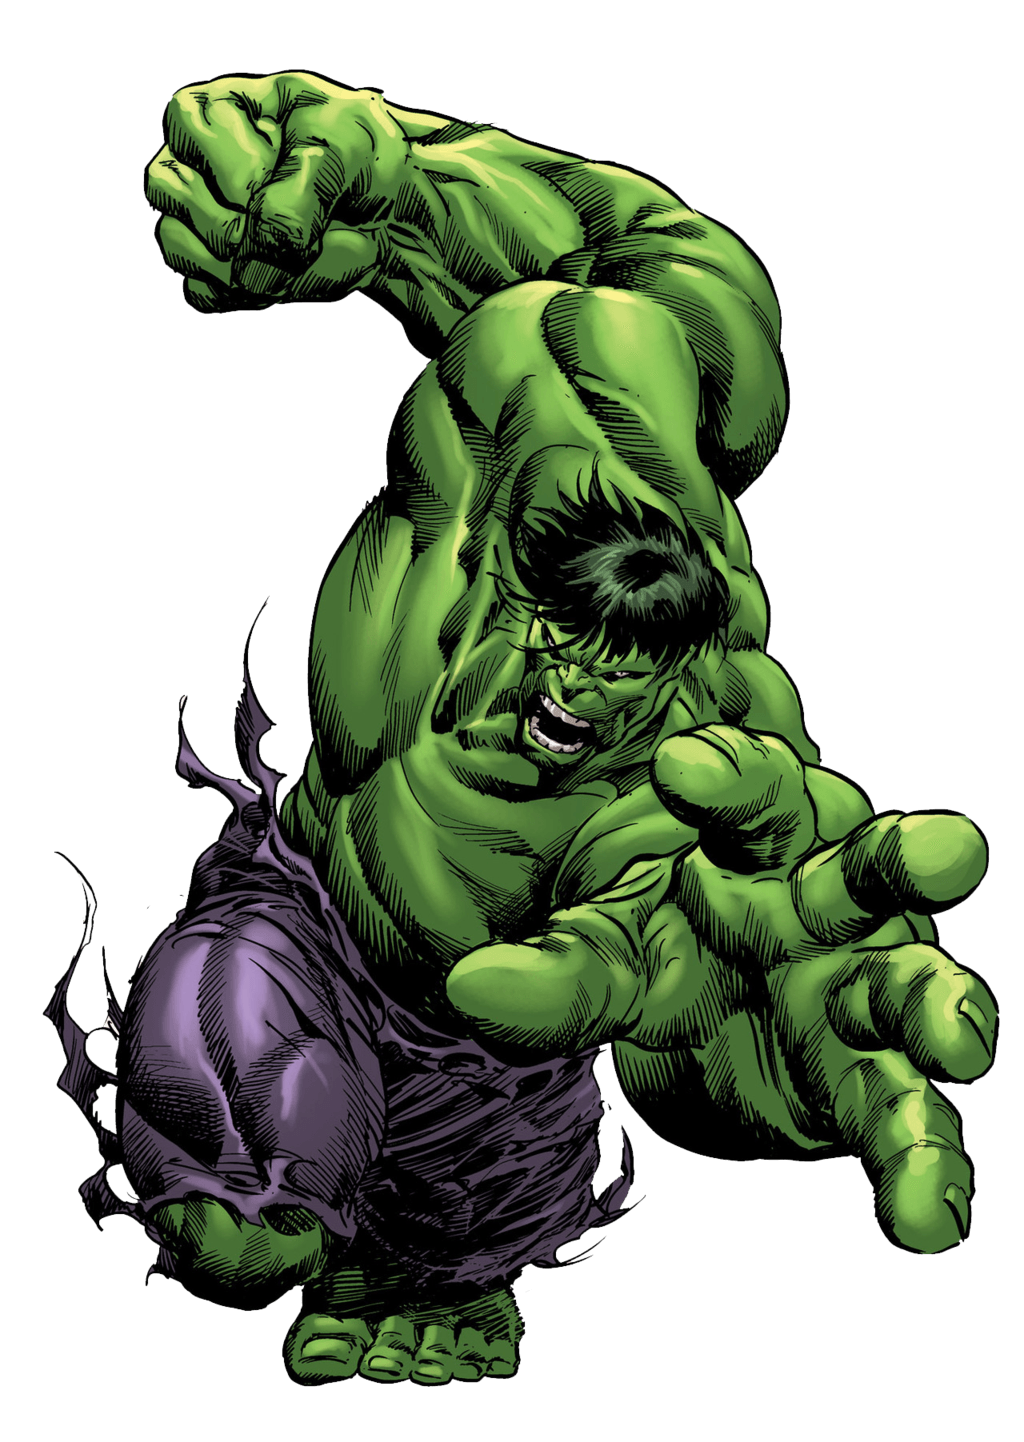 Avengers clipart incredible hulk. Attack transparent png stickpng